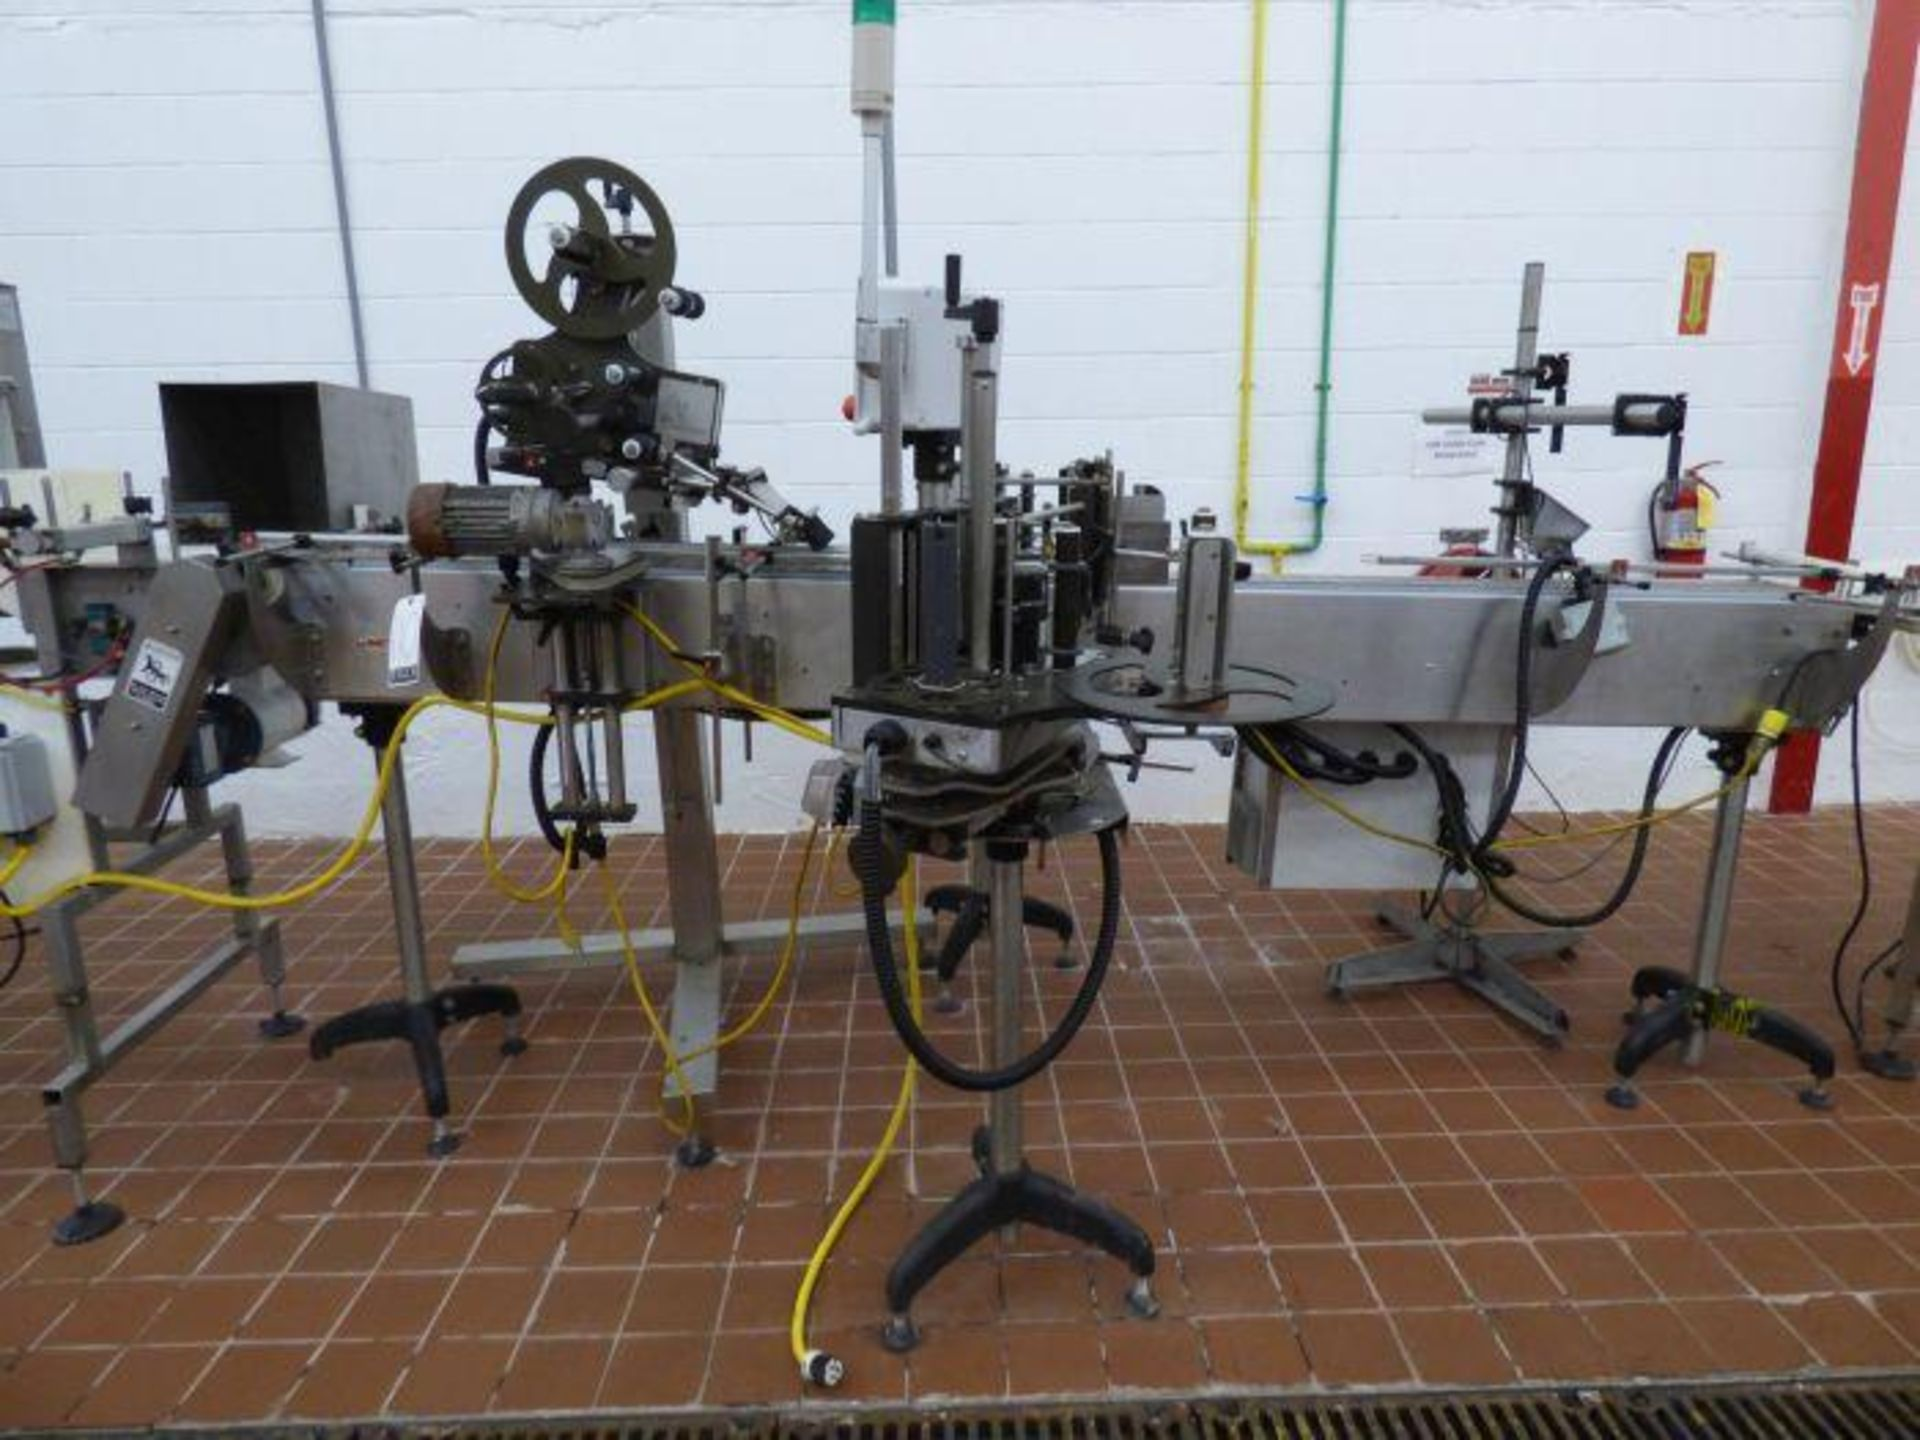 Lot 1110 - Nita Stainless Steel Horizontal Front and Back Wipe-On Pressure Sensitive Labeler